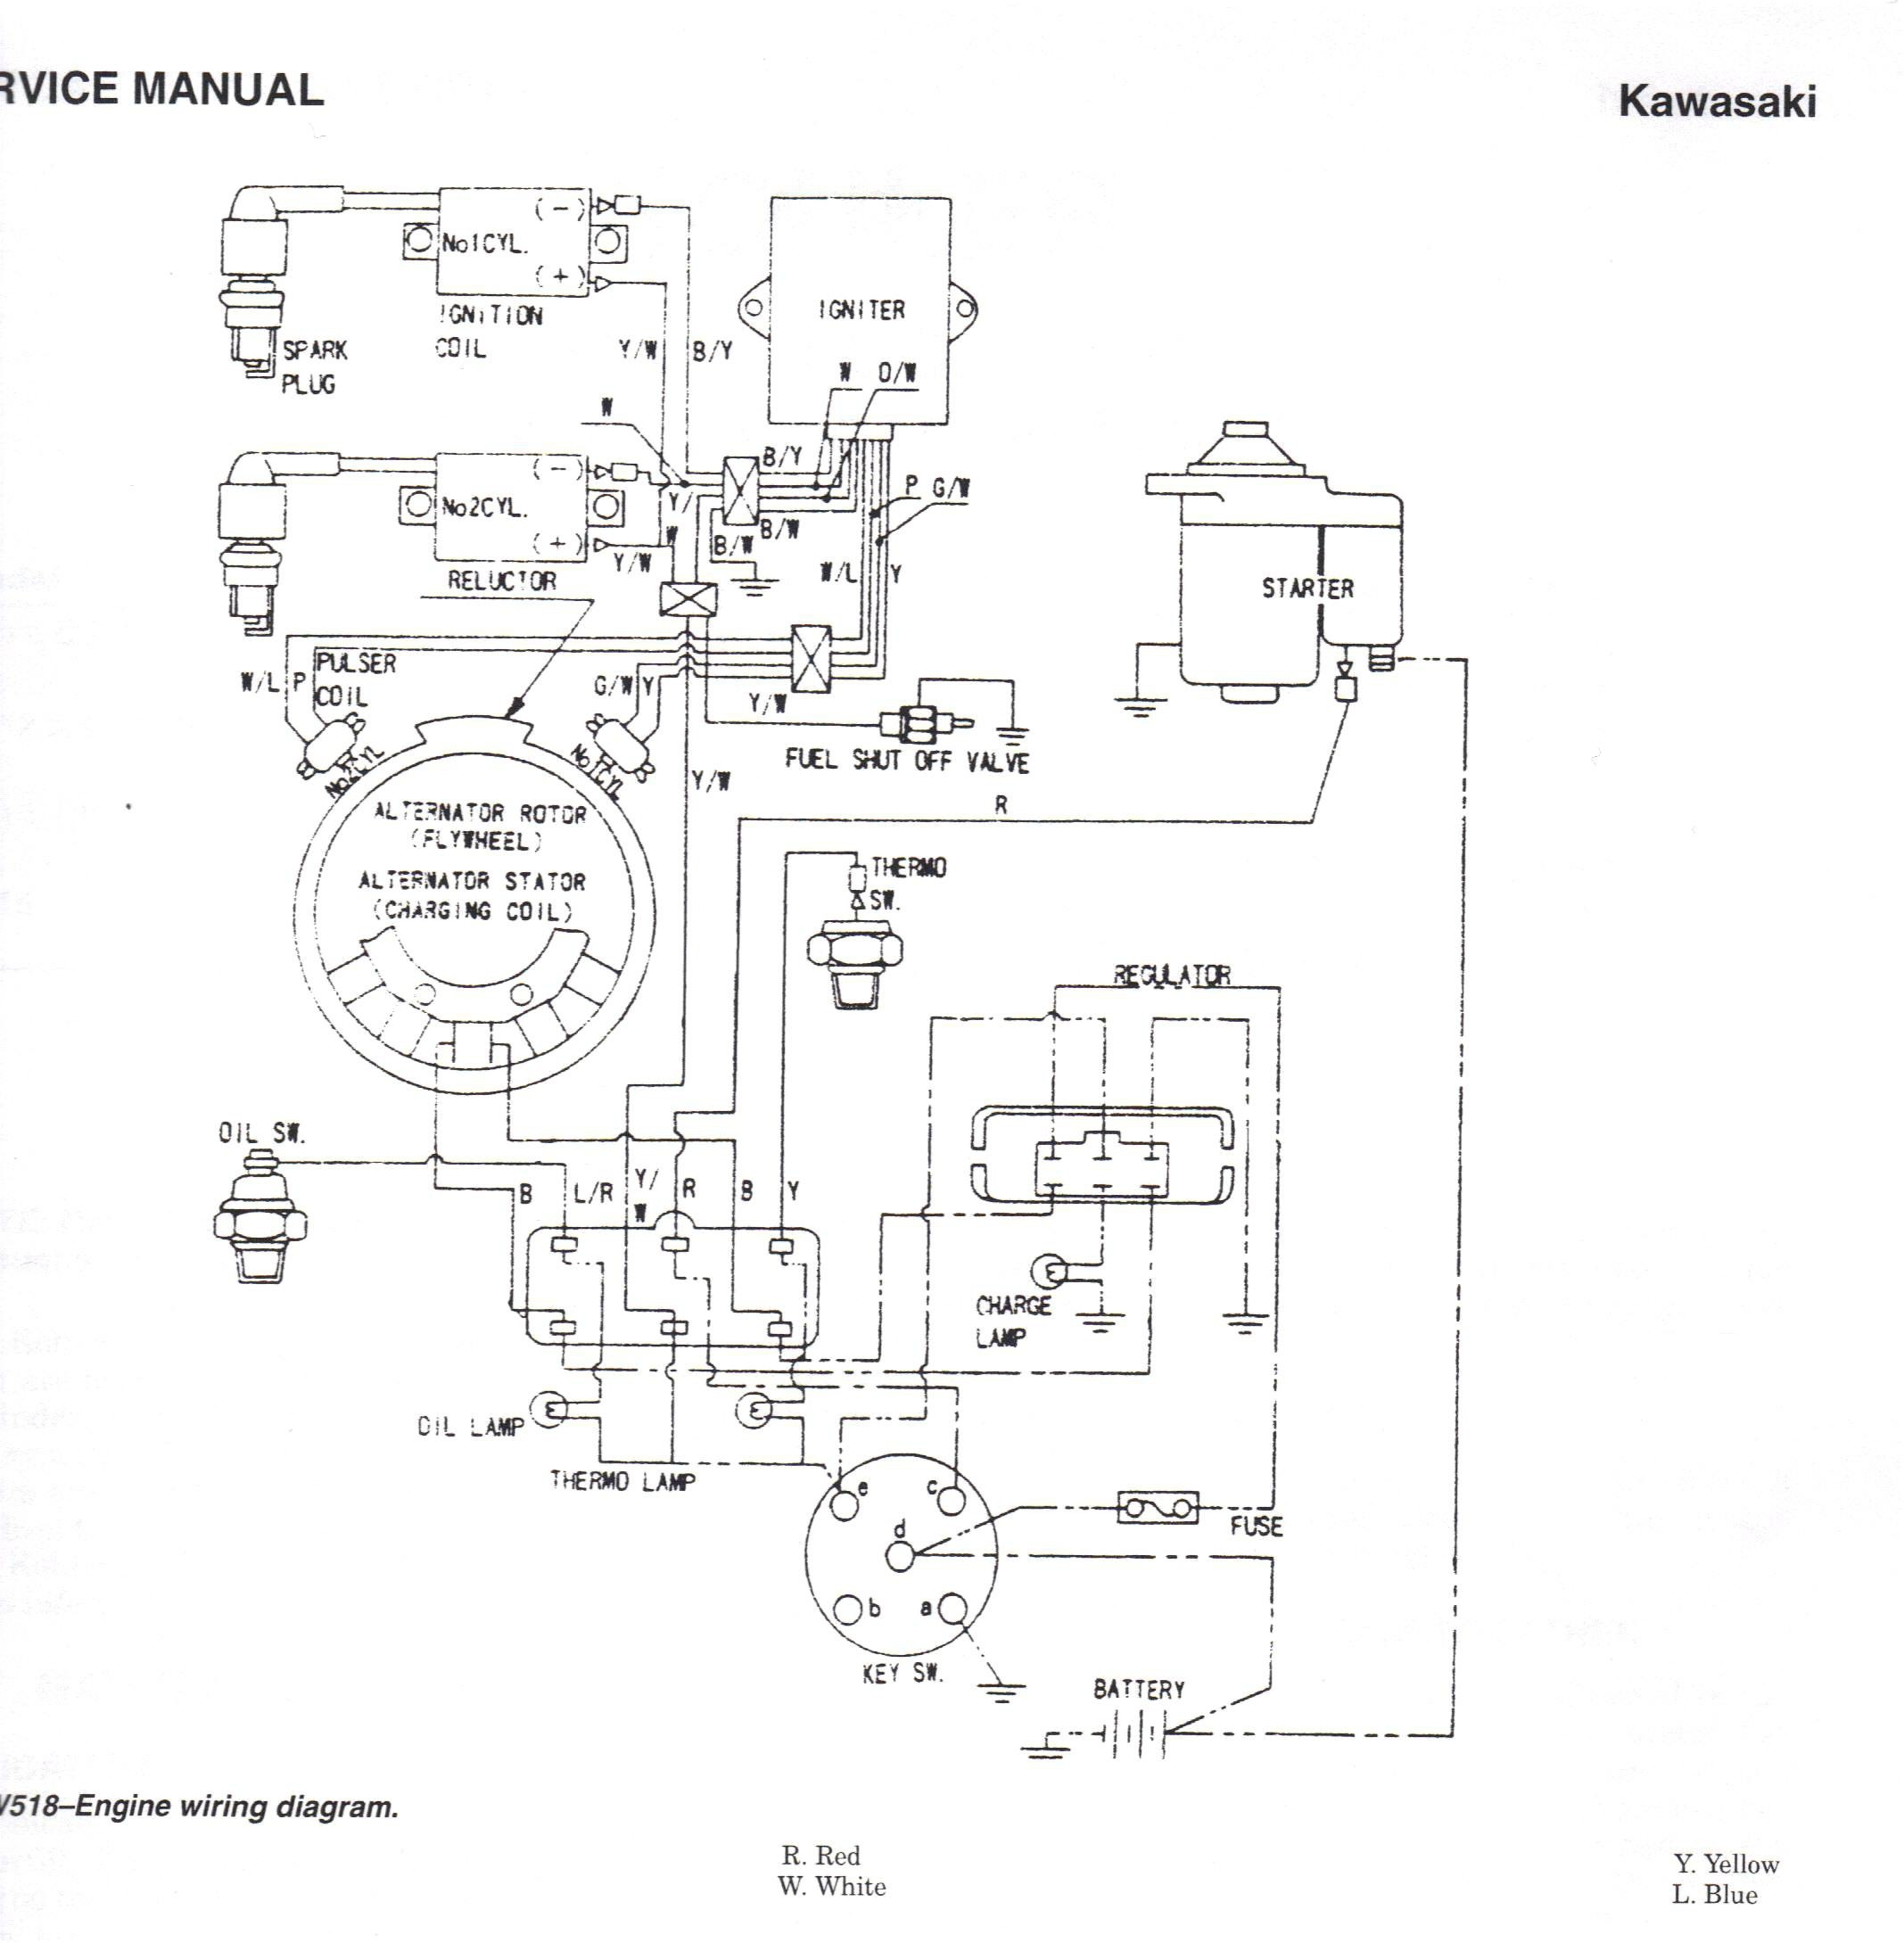 john deere backhoe loader sel wiring diagram john